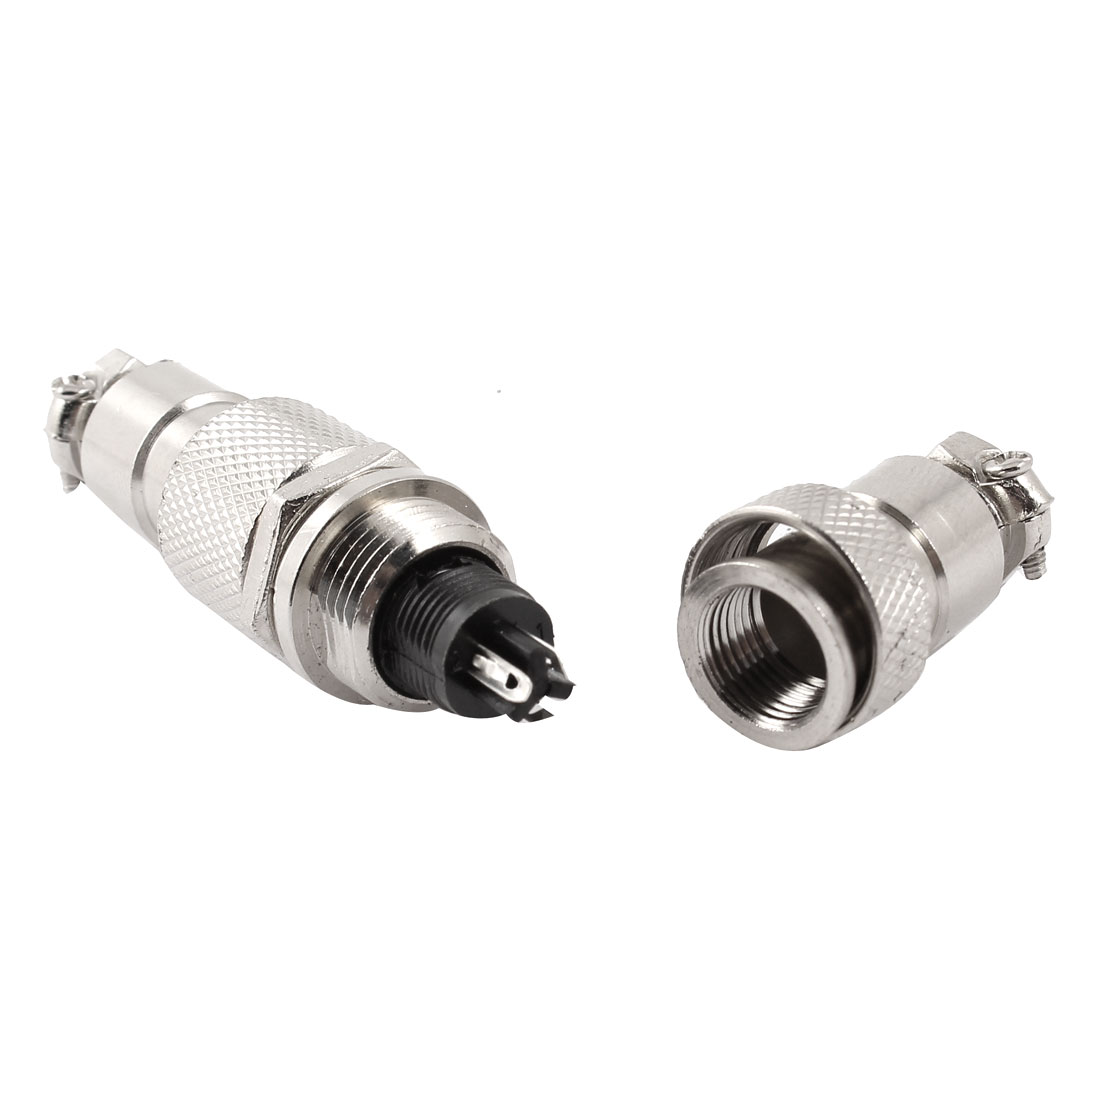 AC 125V 5A 3 Terminal Male Female Cable Screw Butt Join Type Connecting Aviation GX12-3